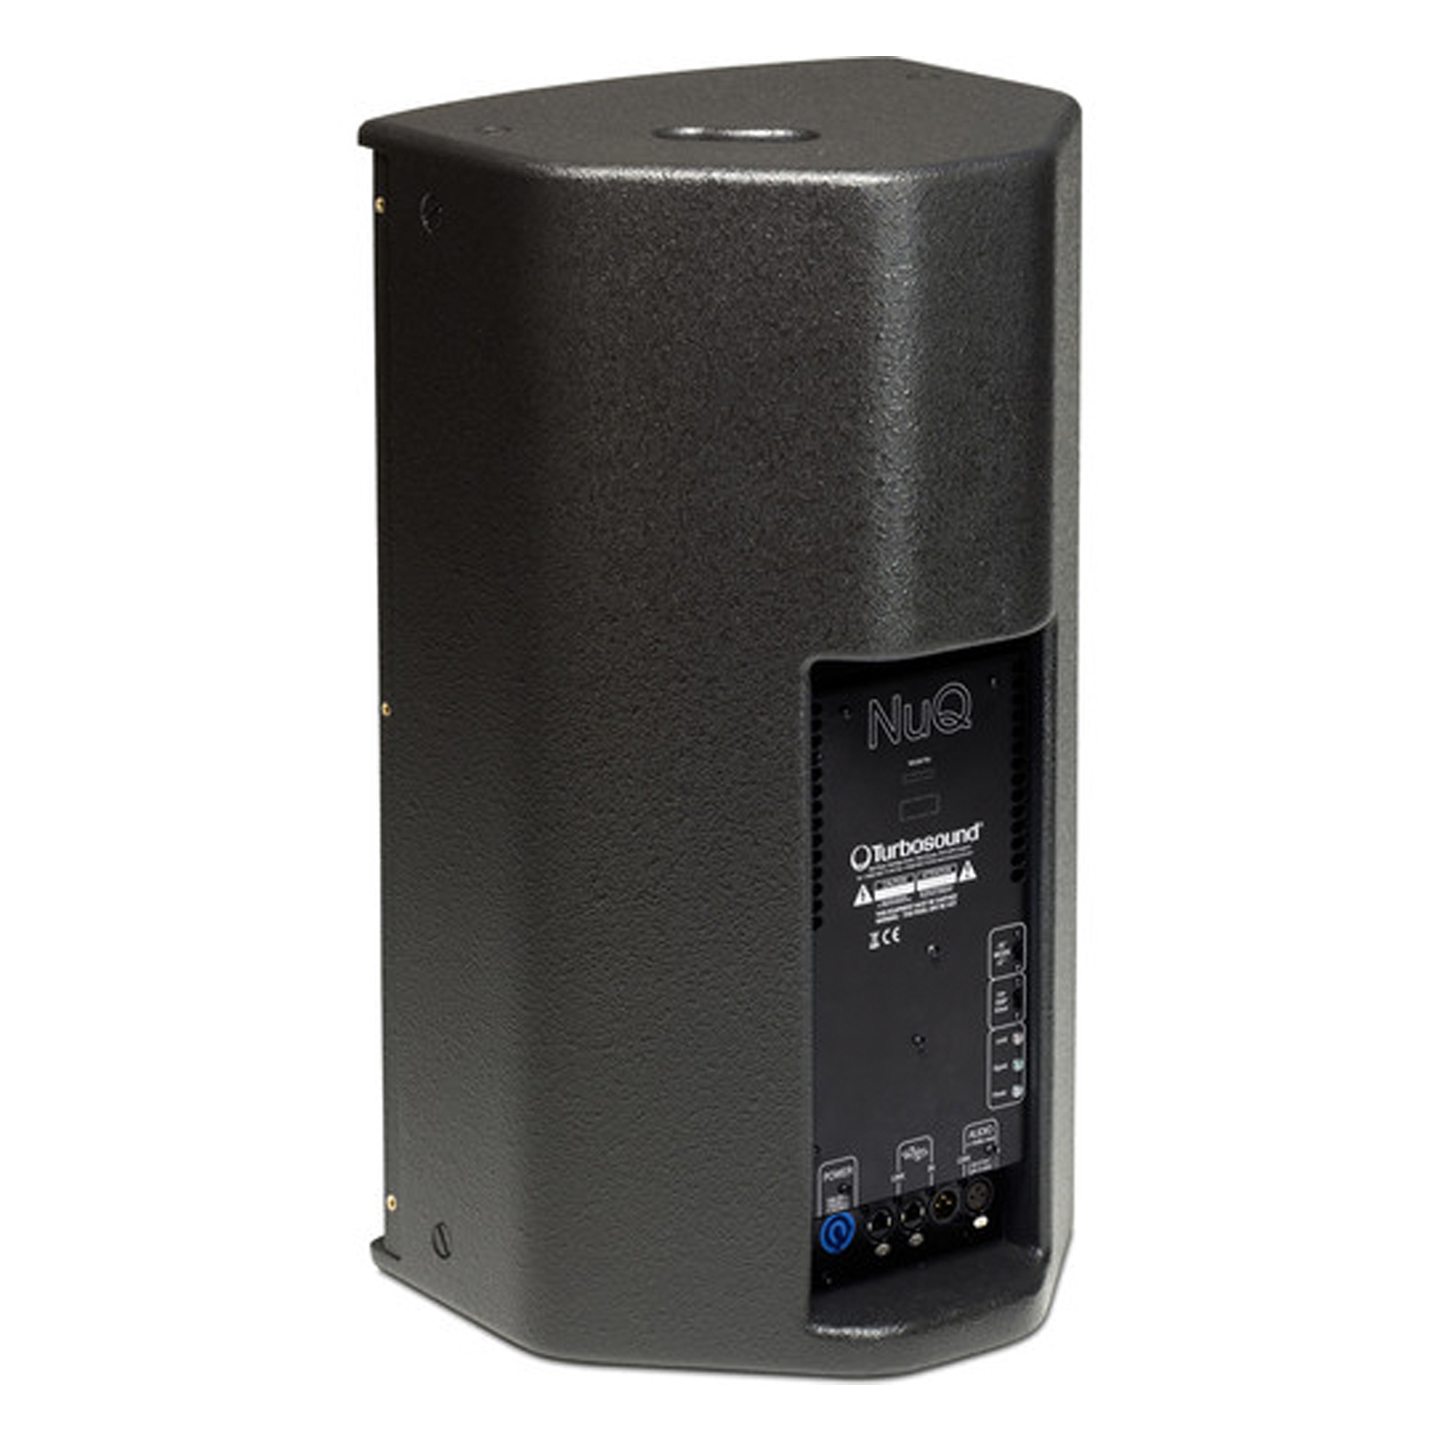 Turbosound NuQ-12DP - Back